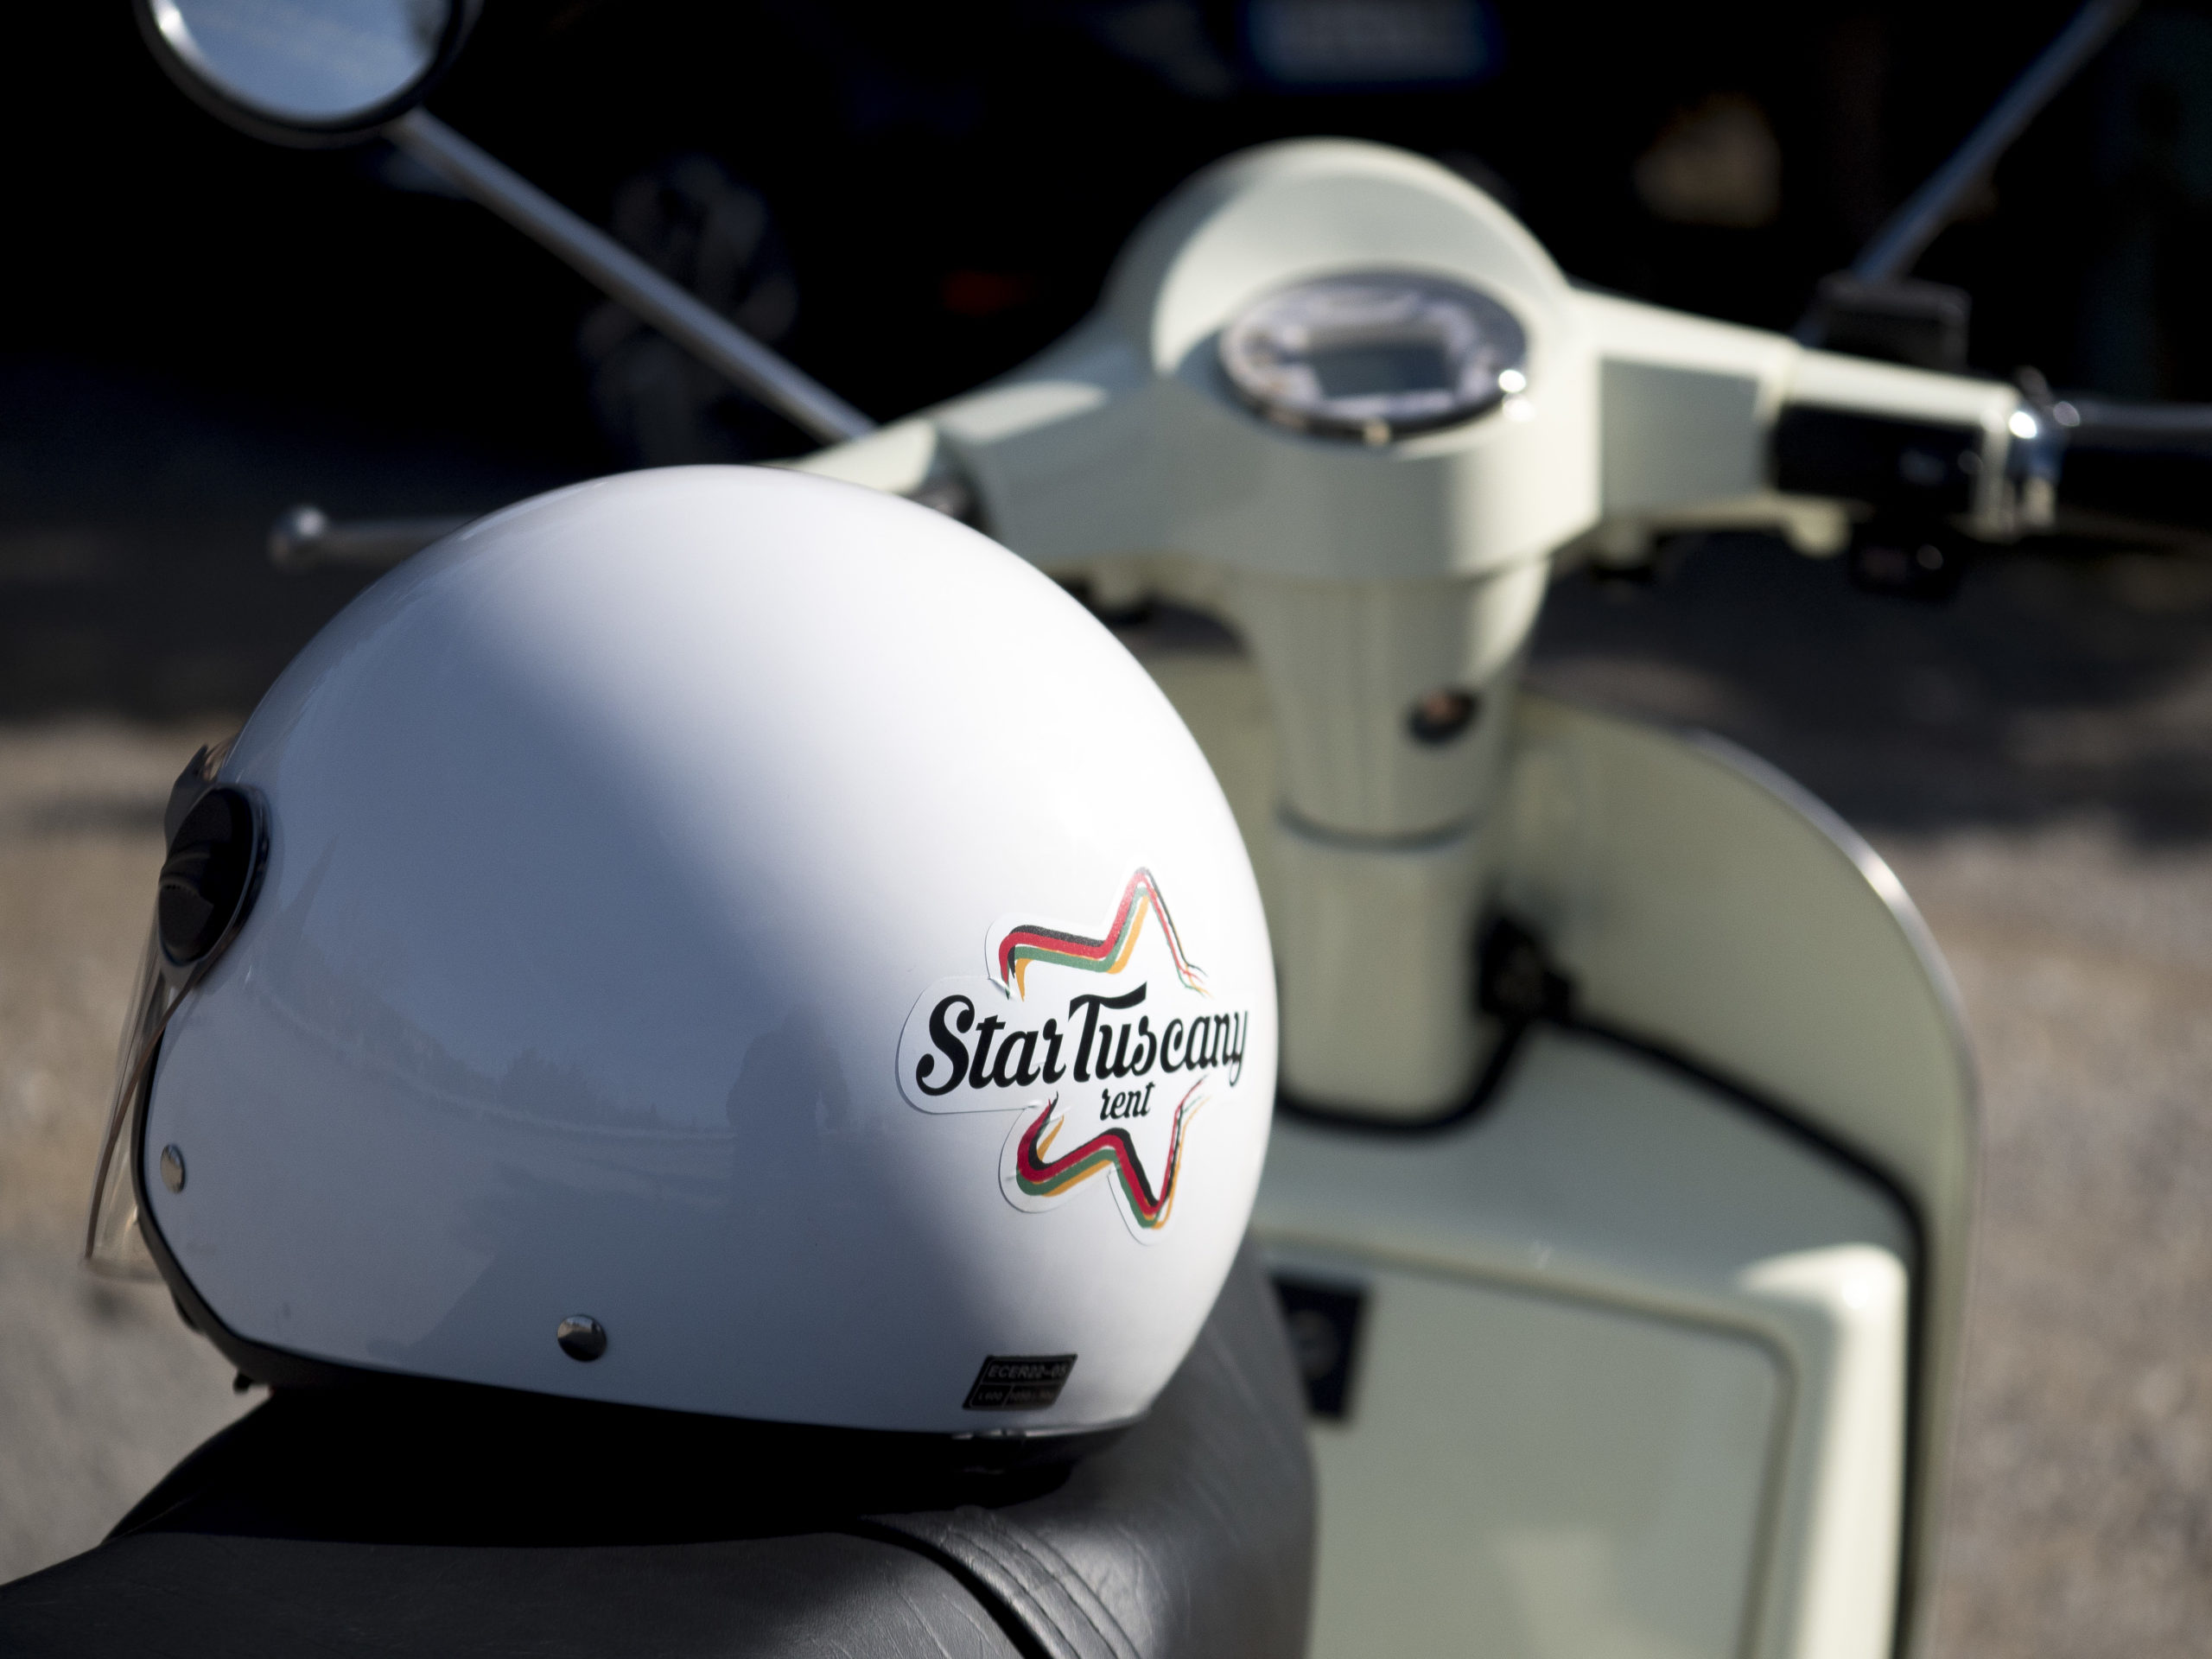 Vespa STAR TUSCANY RENT